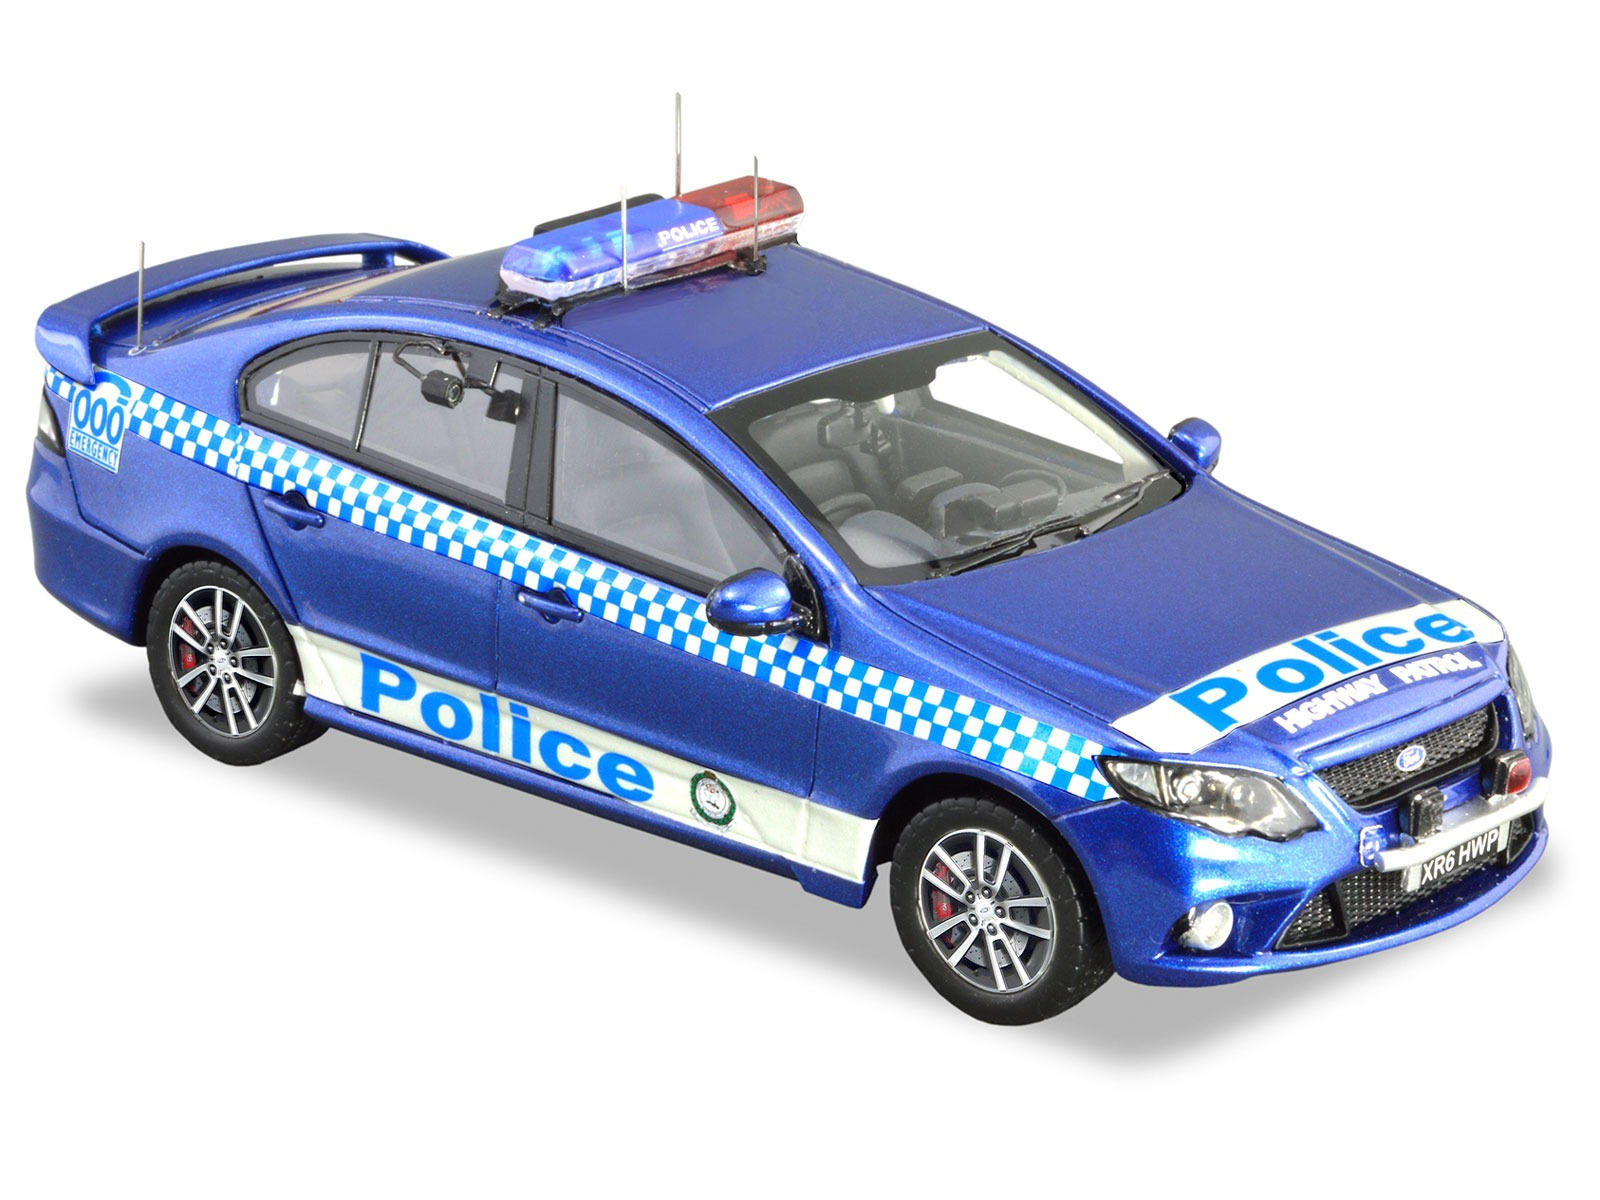 Ford FG XR6 Turbo Highway Patrol – Kinetic